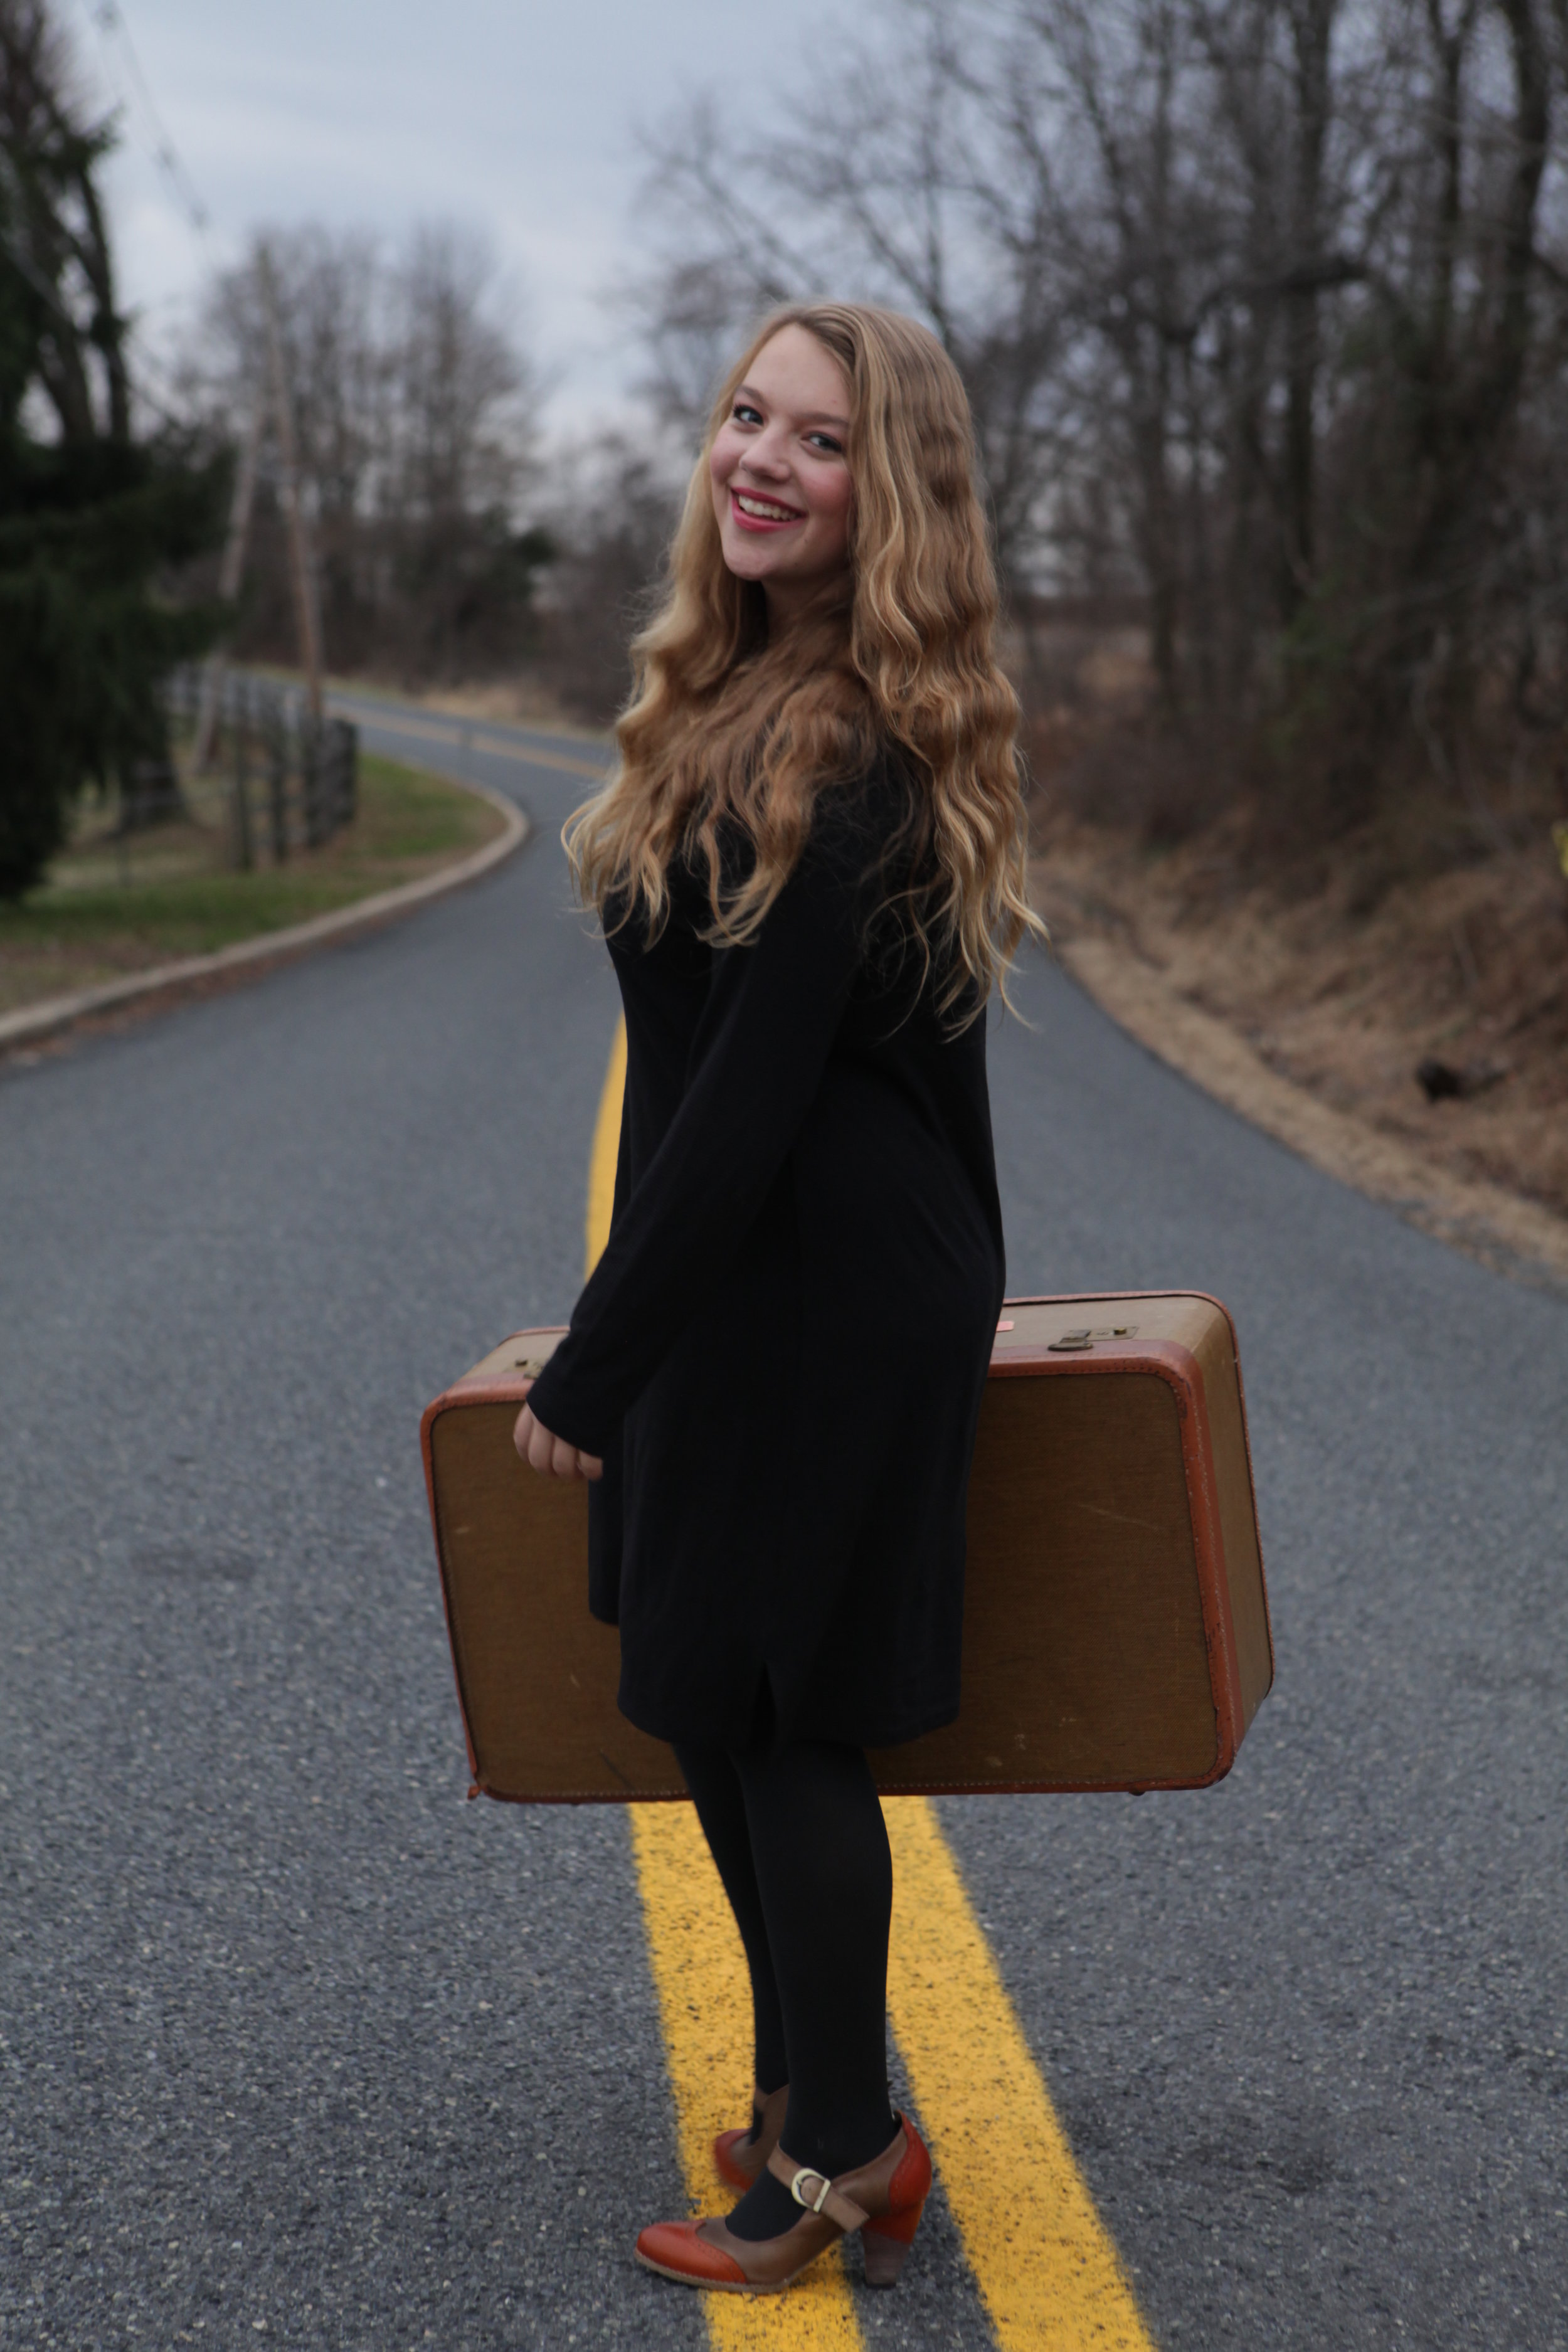 Image Description: A young woman, Grace, with long blonde hair stands smiling in the middle of a road with forrest on either side holding a suitcase.